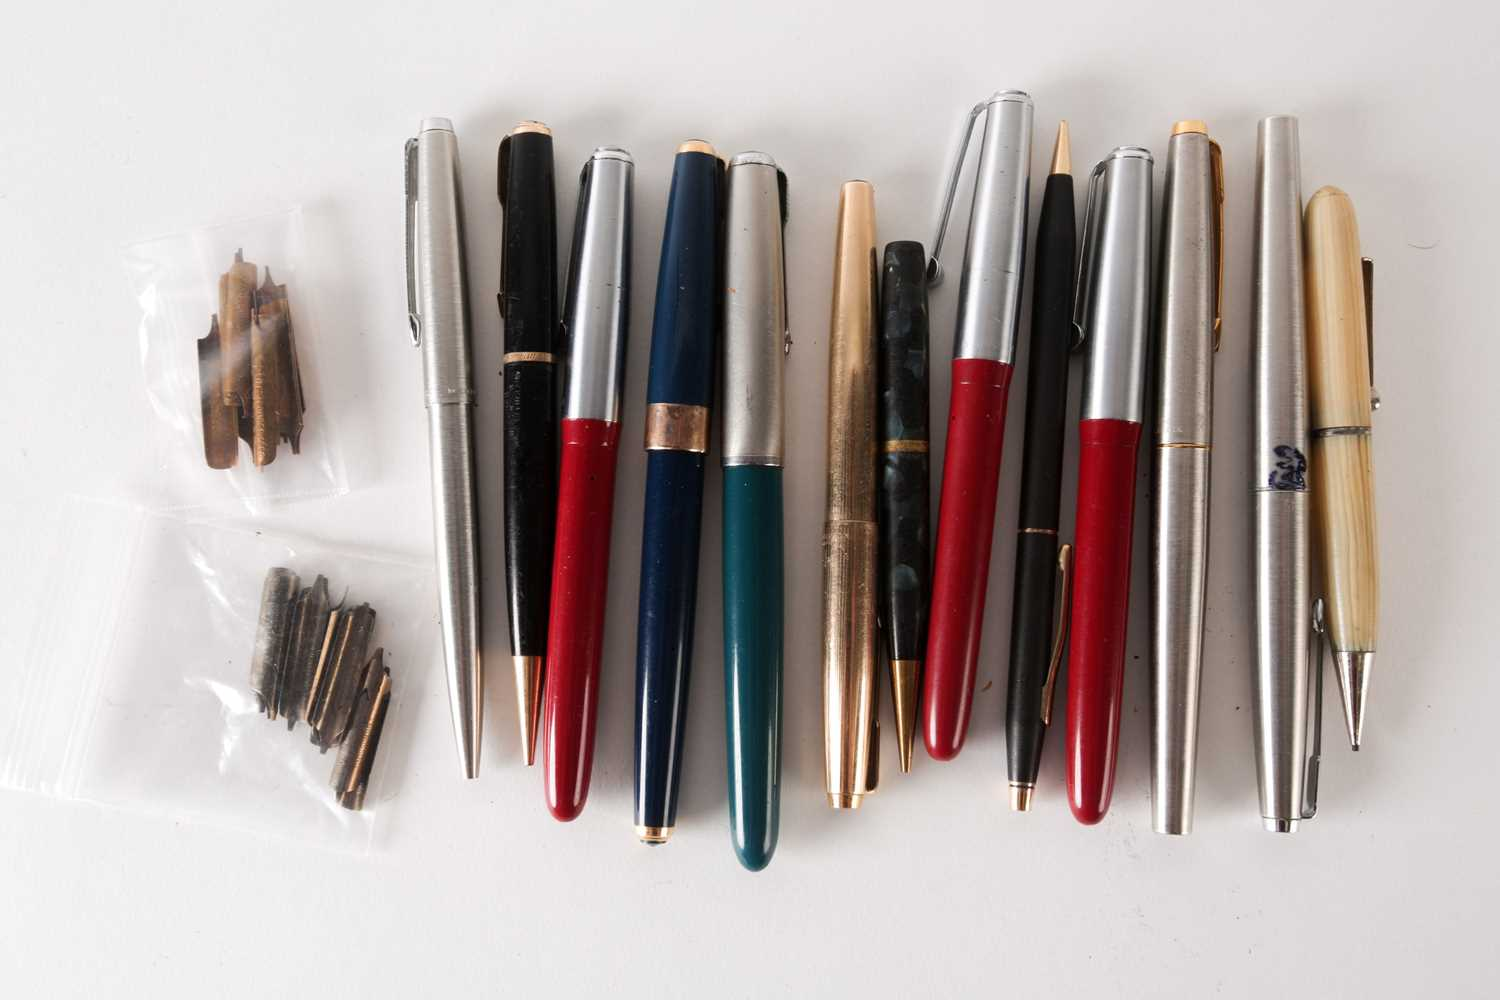 Three Platignum iridium fountain pens with 14 K gold nibs, together with a Parker fountain pen in